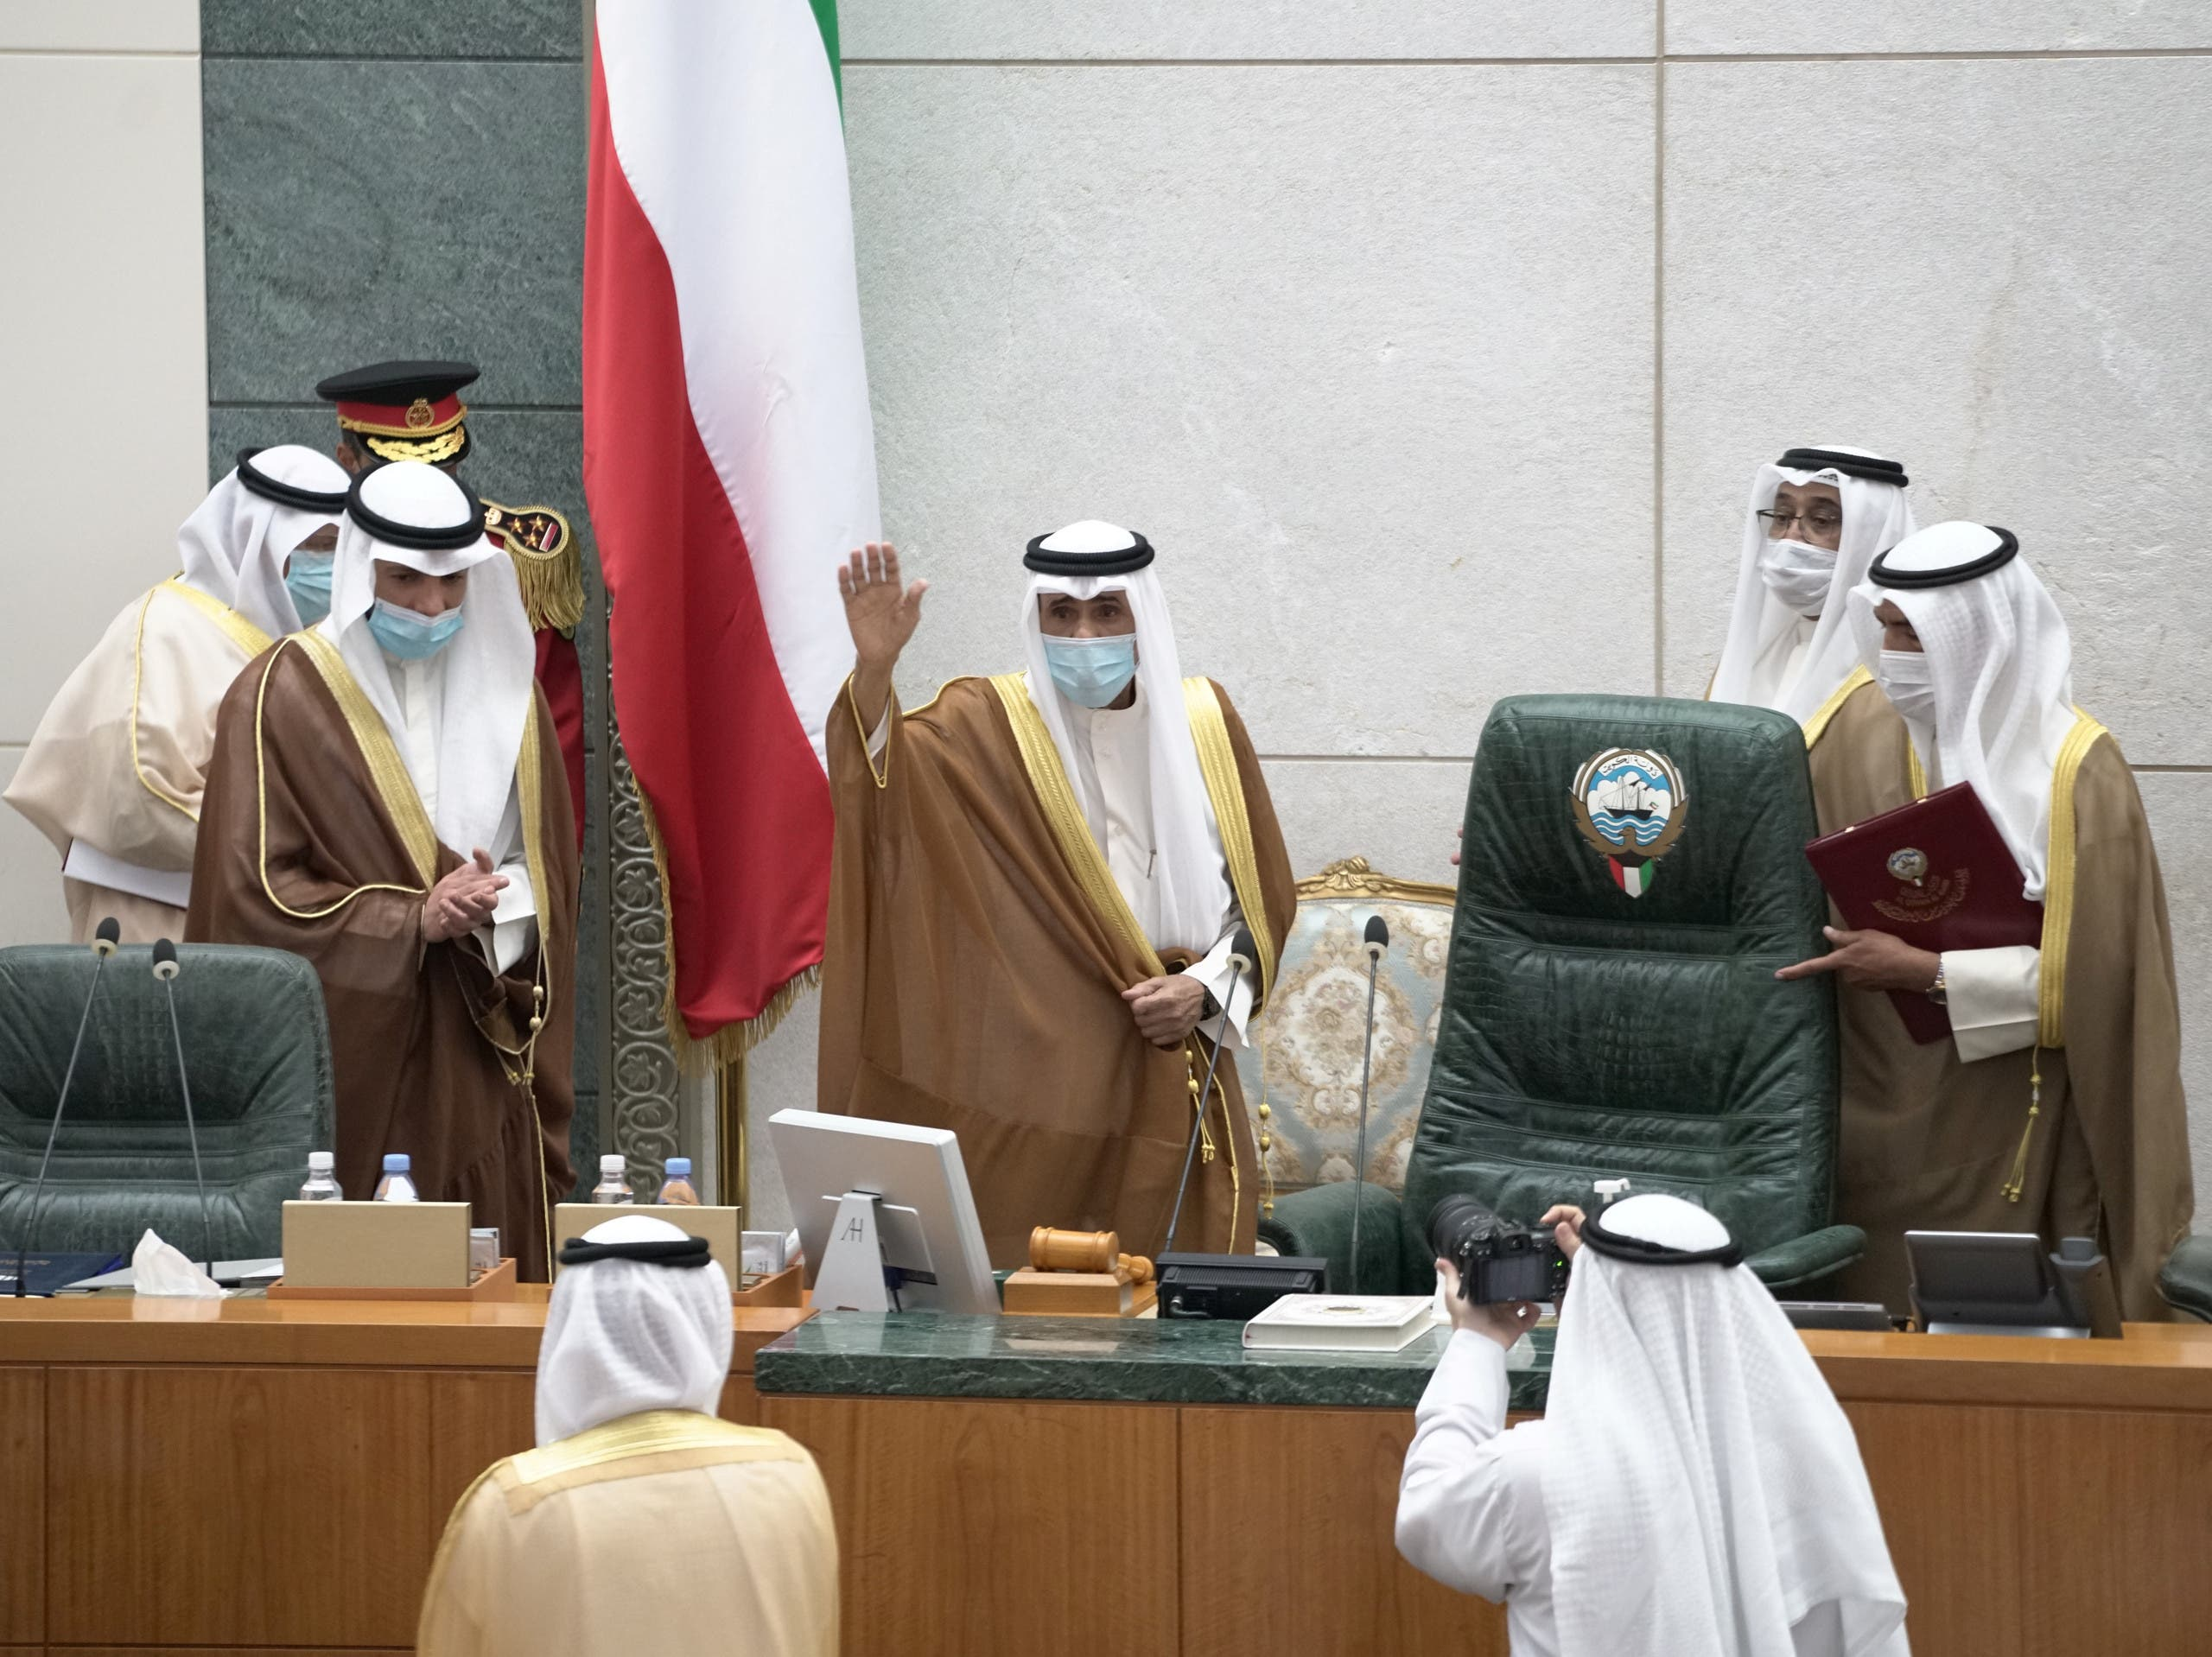 Kuwait's new Emir Nawwaf al-Ahmad al-Sabah gestures as he takes the oath of office at the parliament, in Kuwait City, Kuwait September 30, 2020. (Reuters)